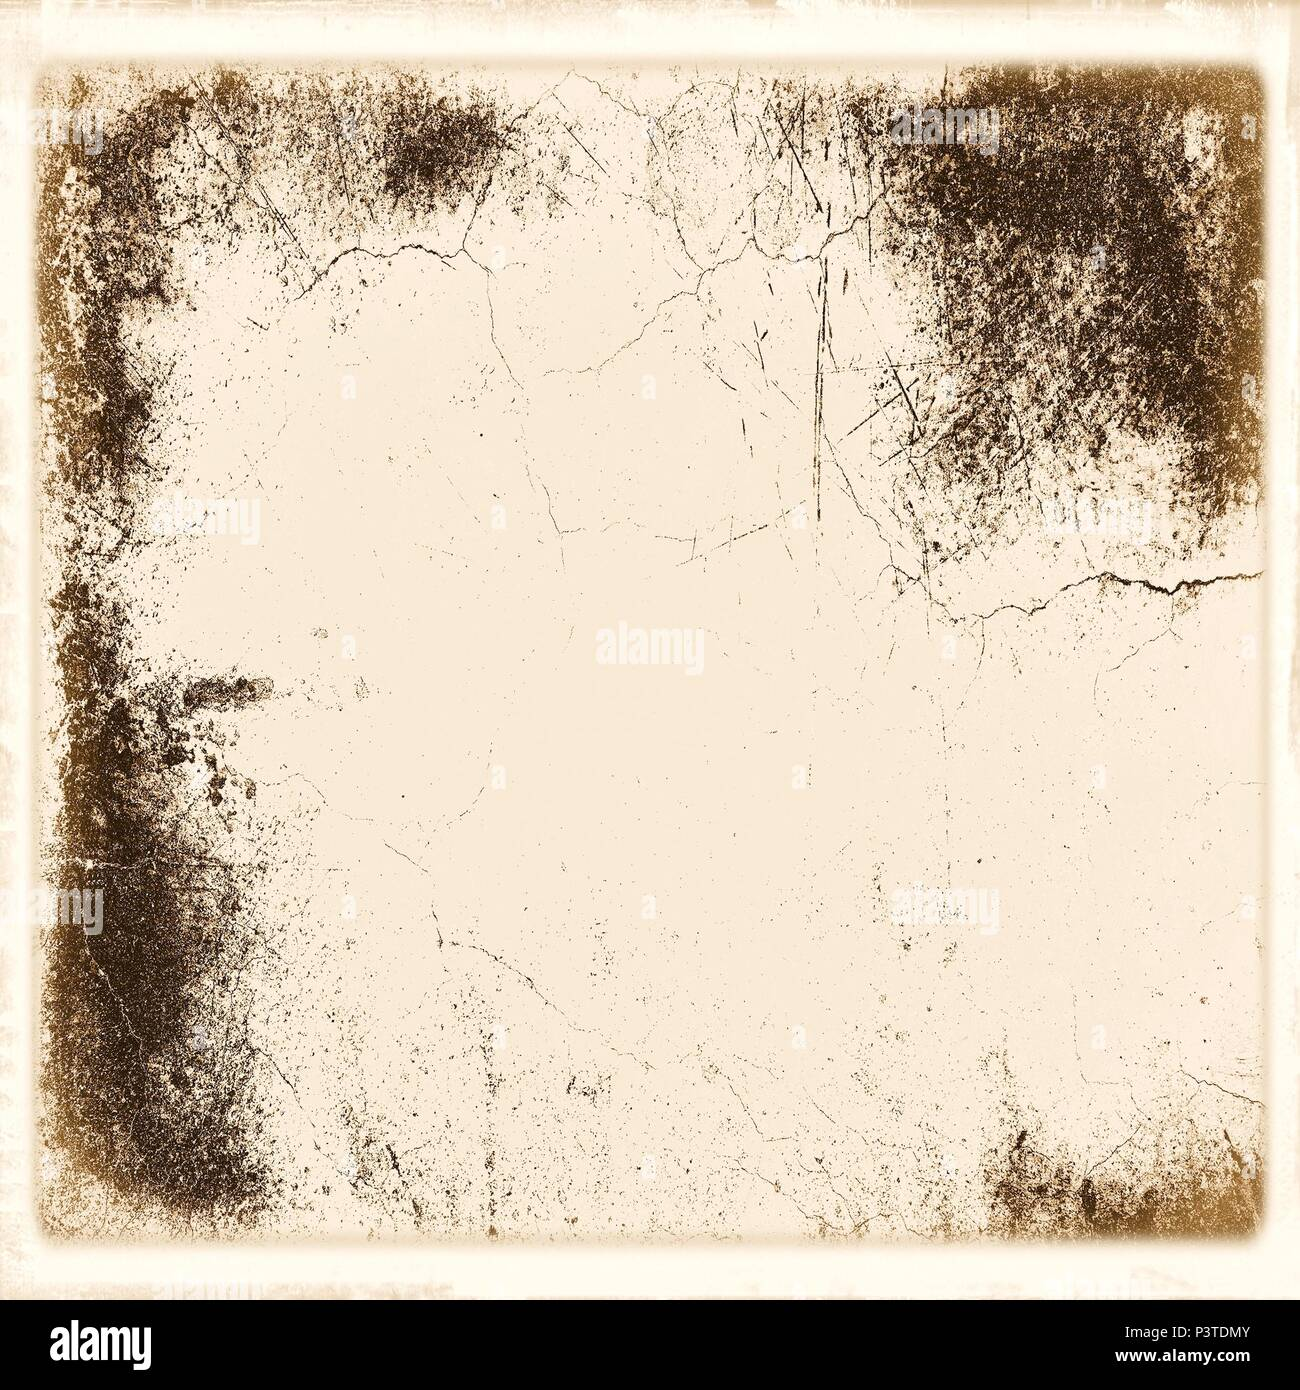 Vintage cracked wall in sepia tones with faded borders. - Stock Image